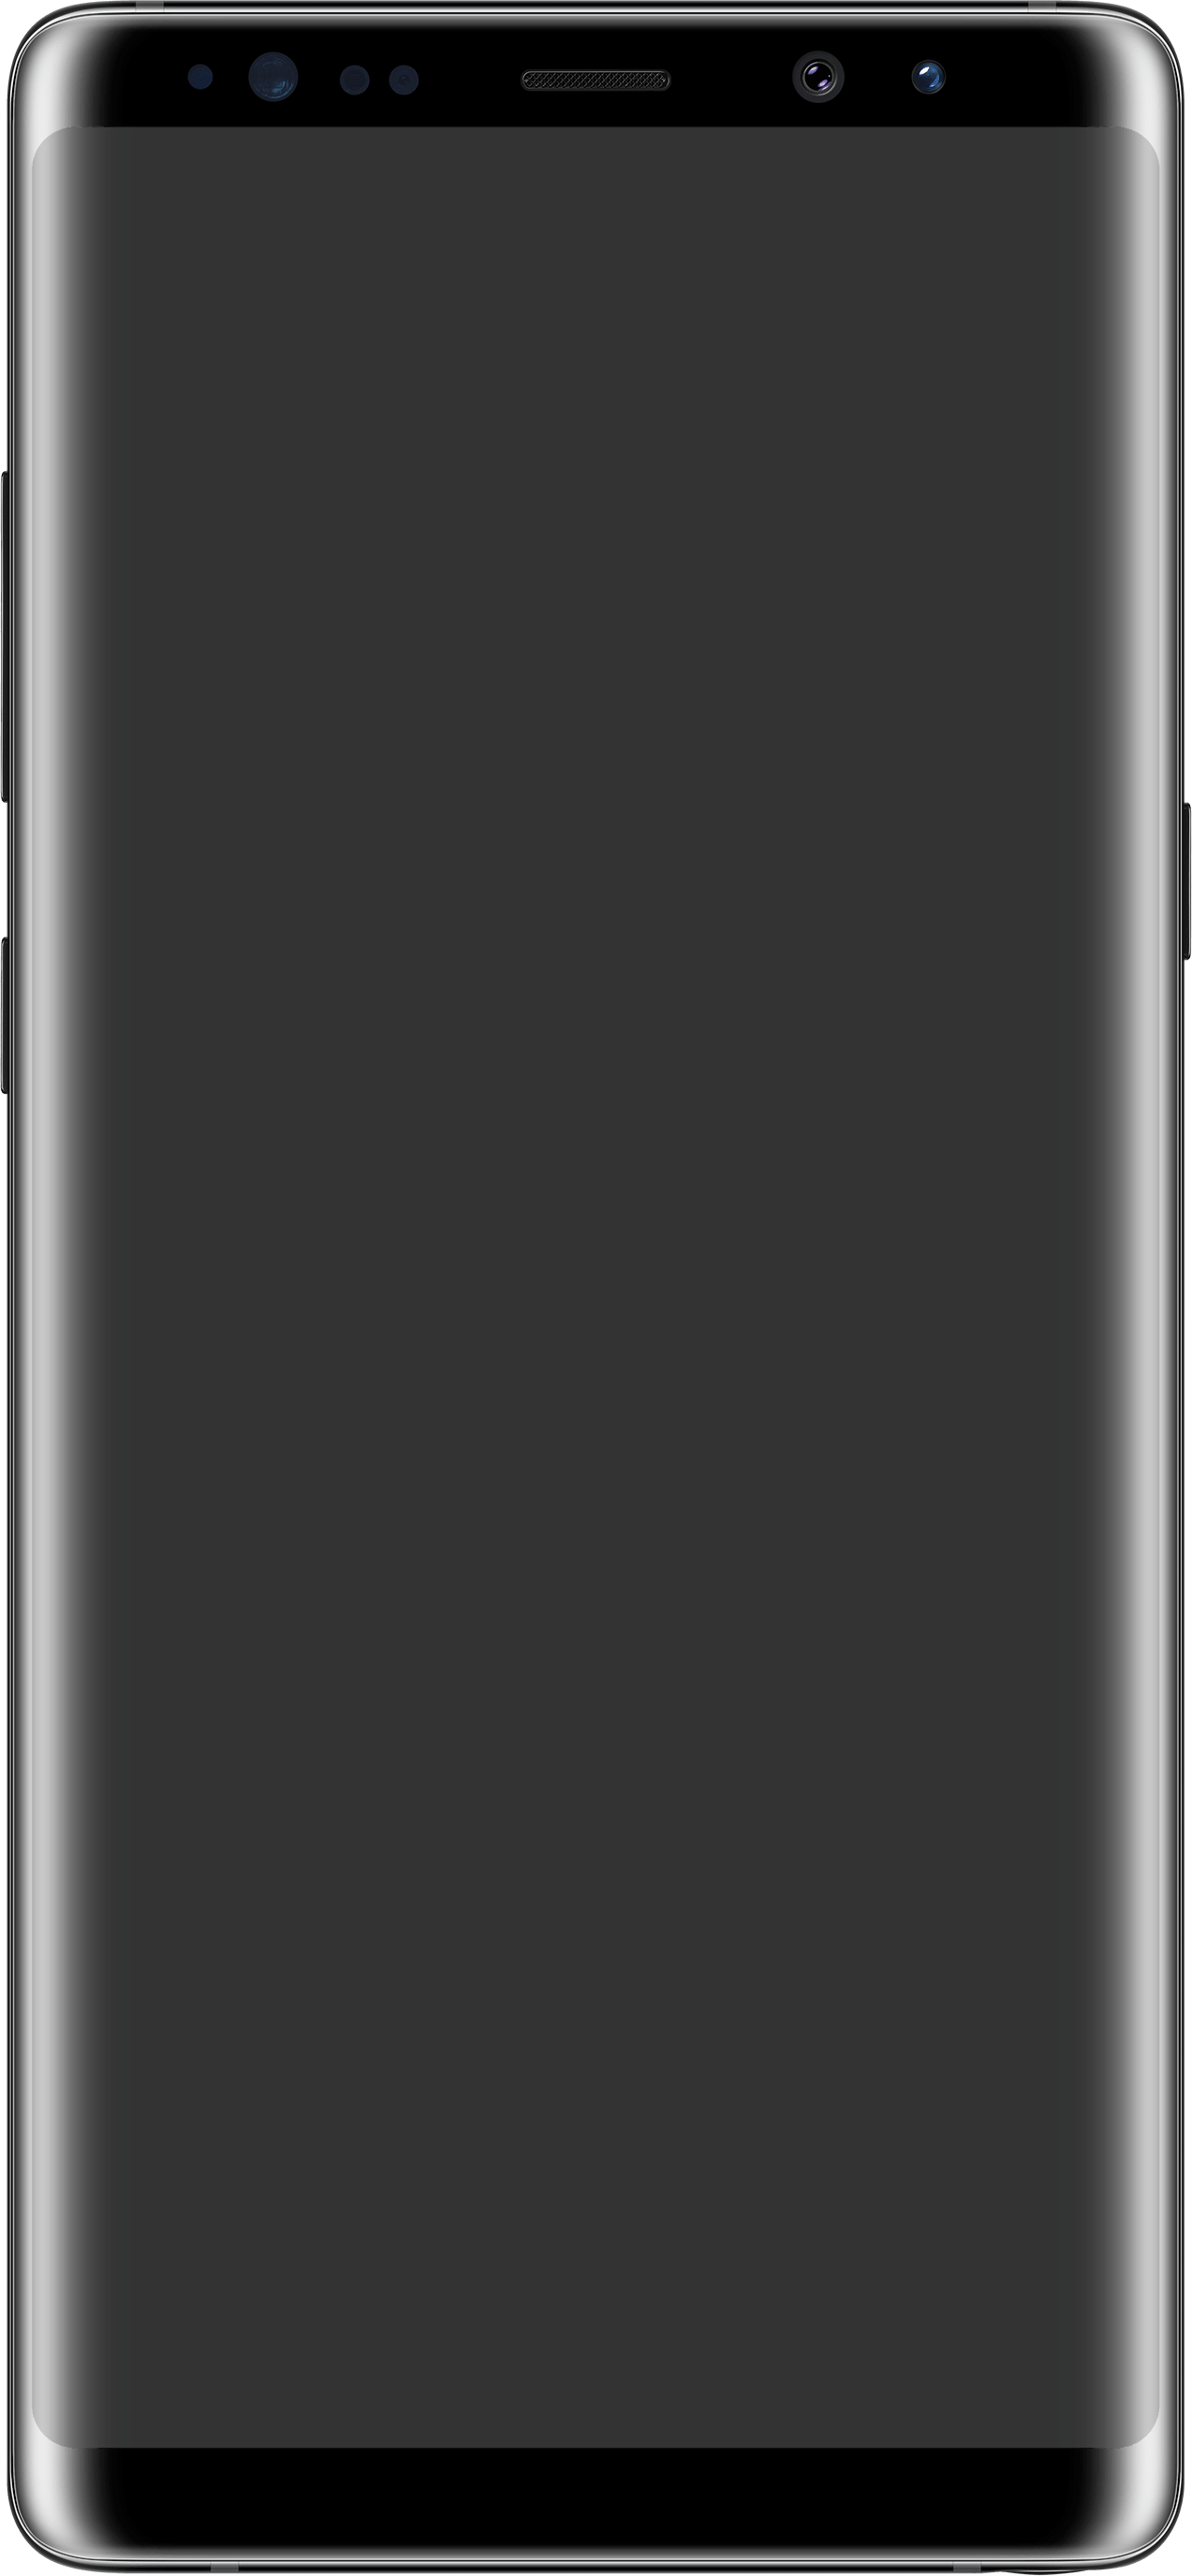 File:Samsung Galaxy Note 8.png.